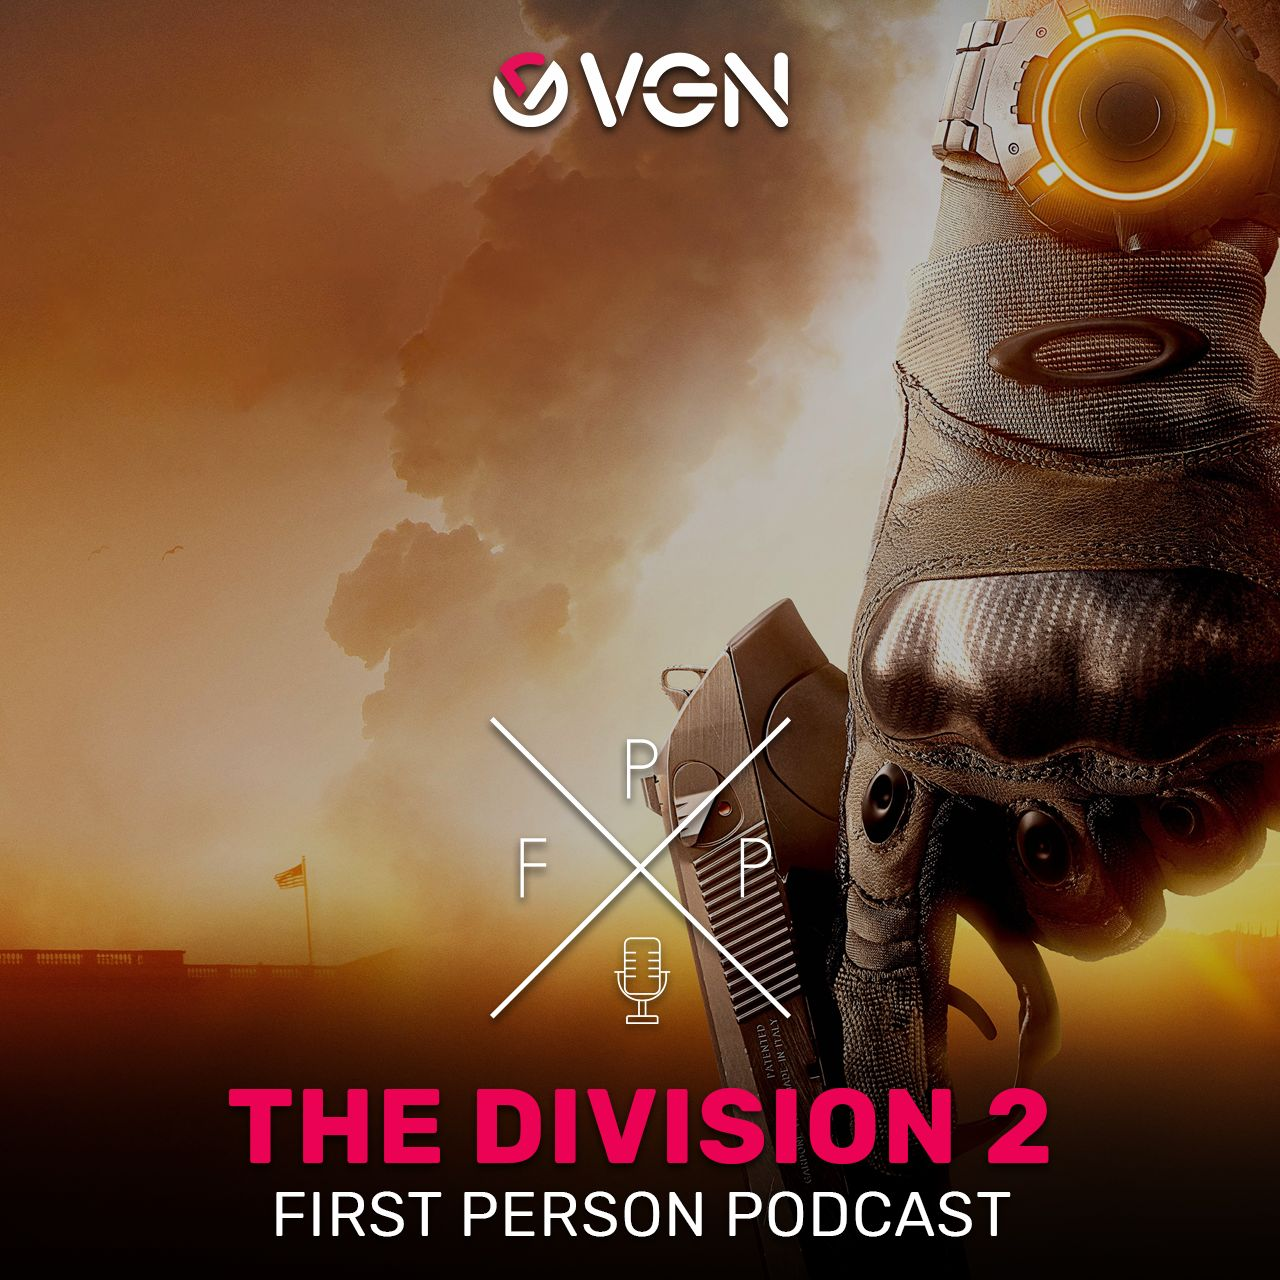 First Person Podcast - The Division 2